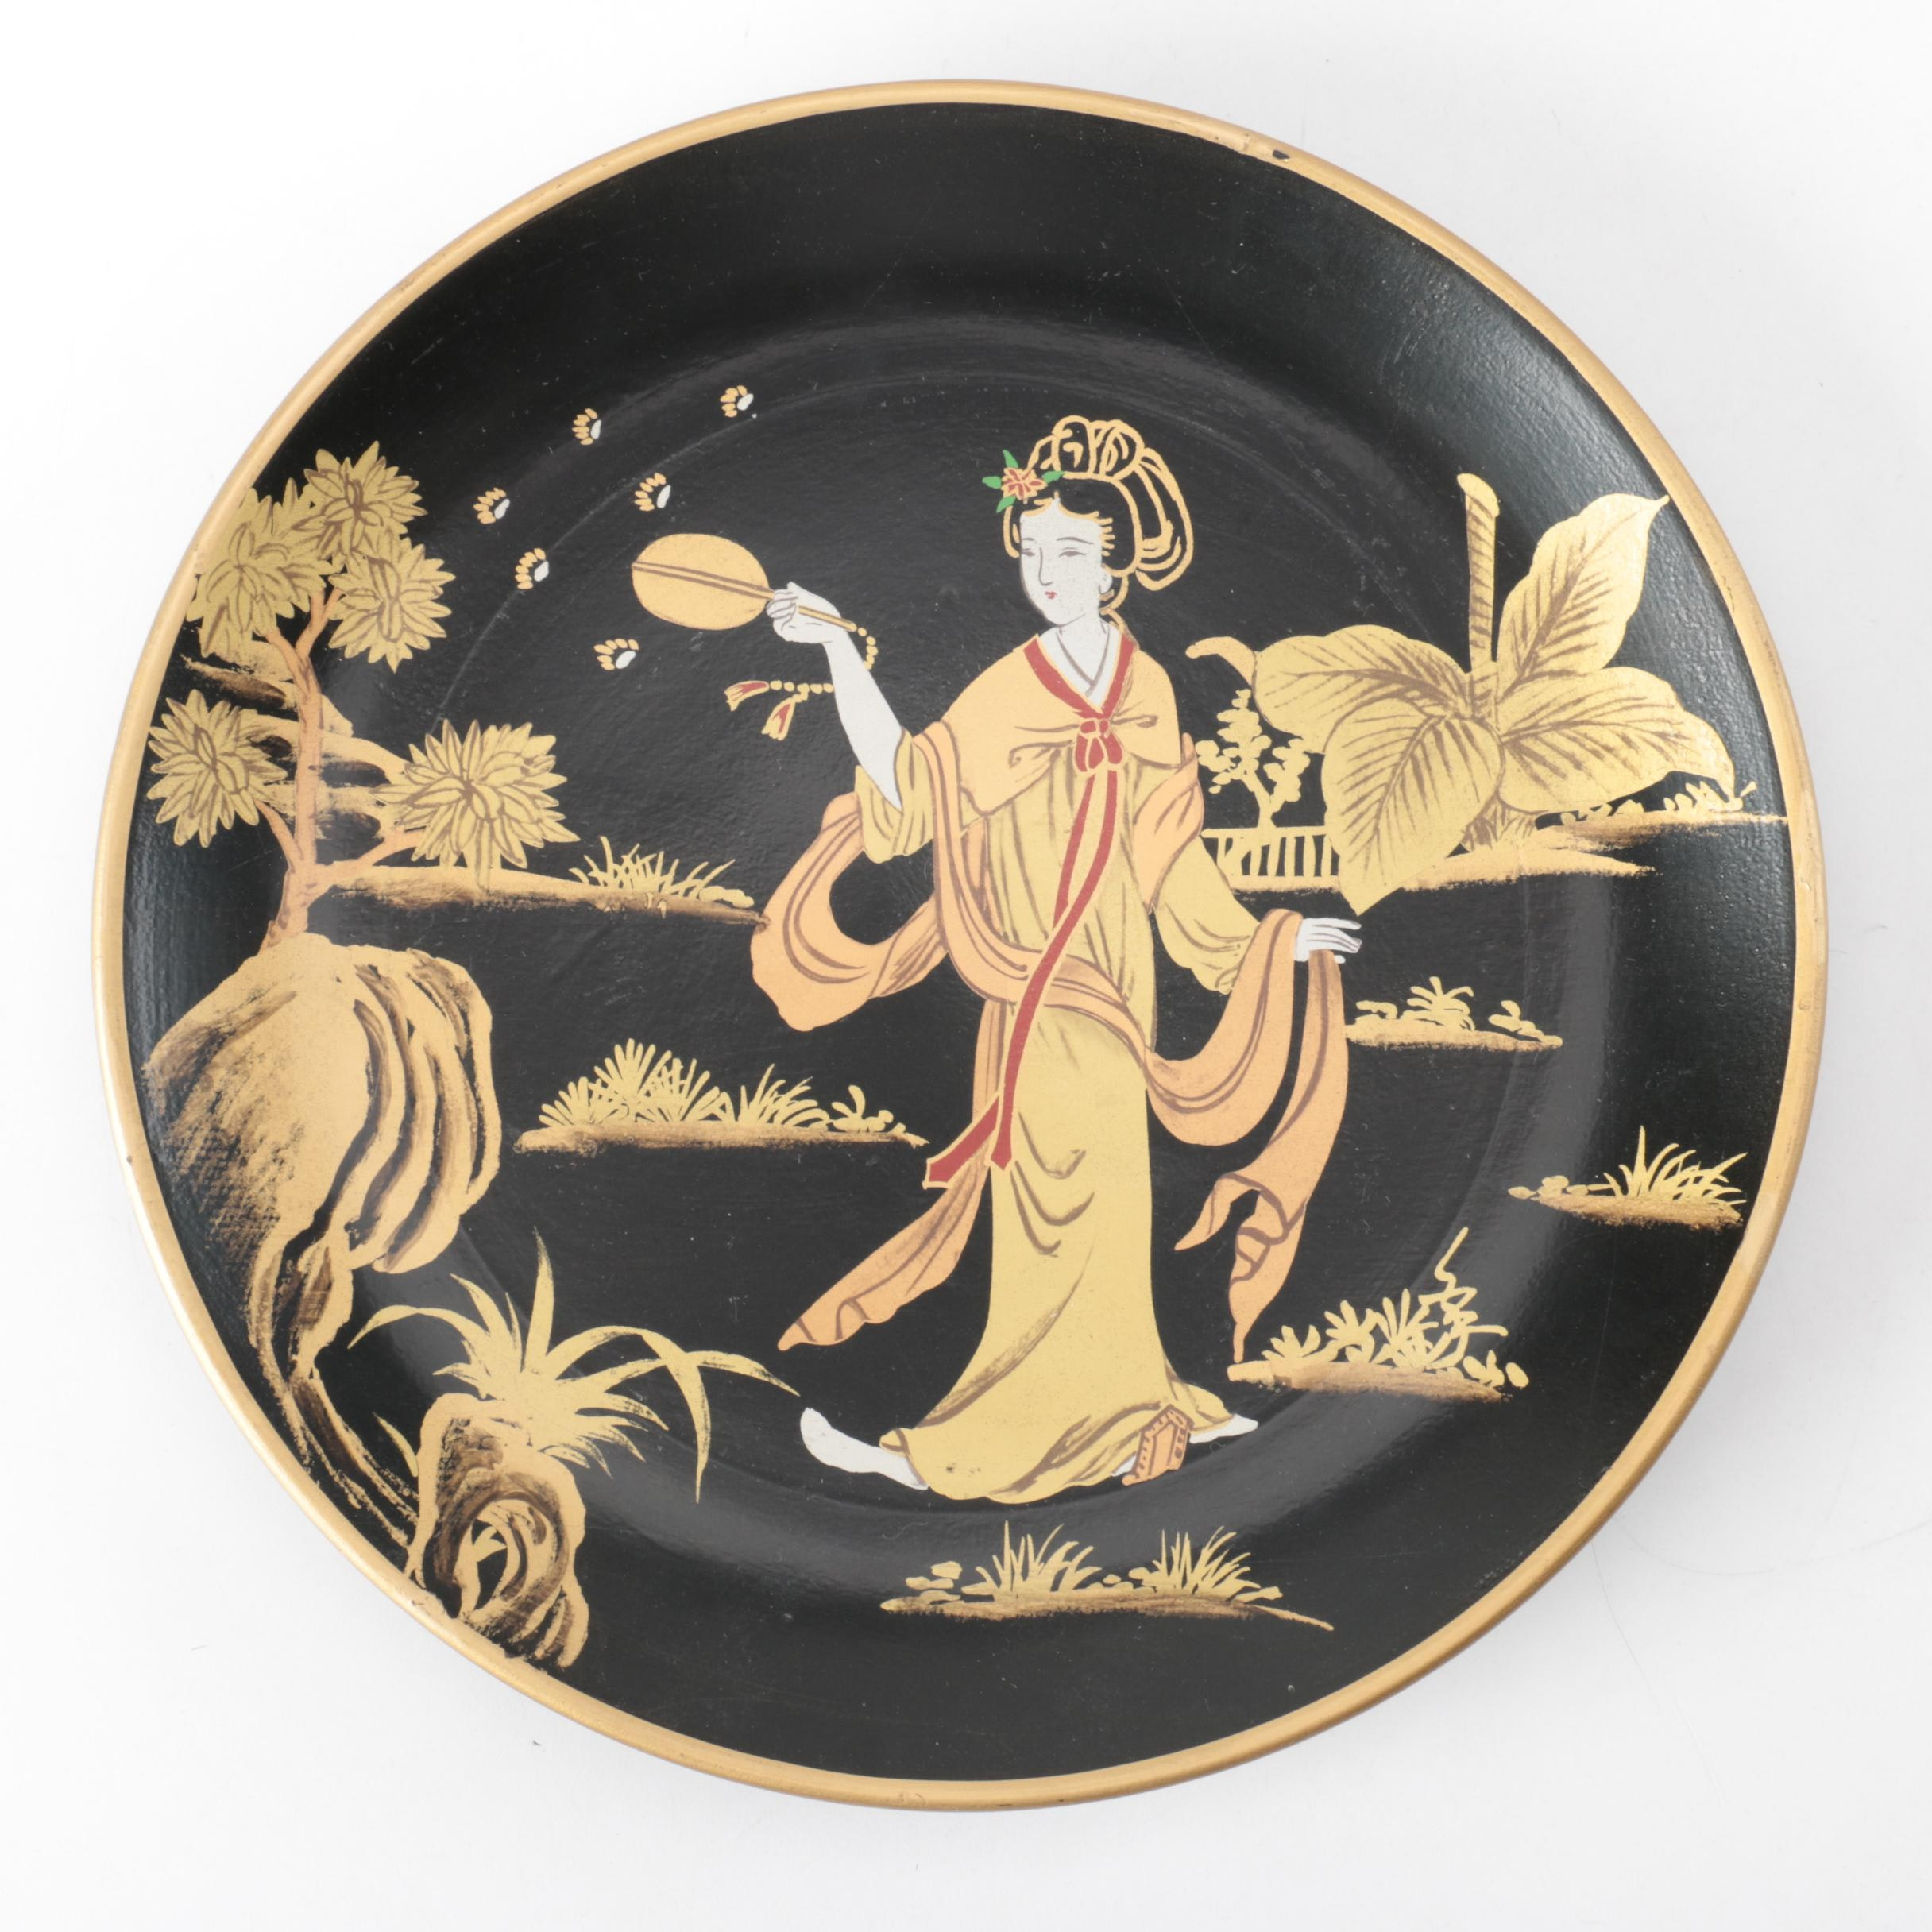 Japanese-Inspired Decorative Plate